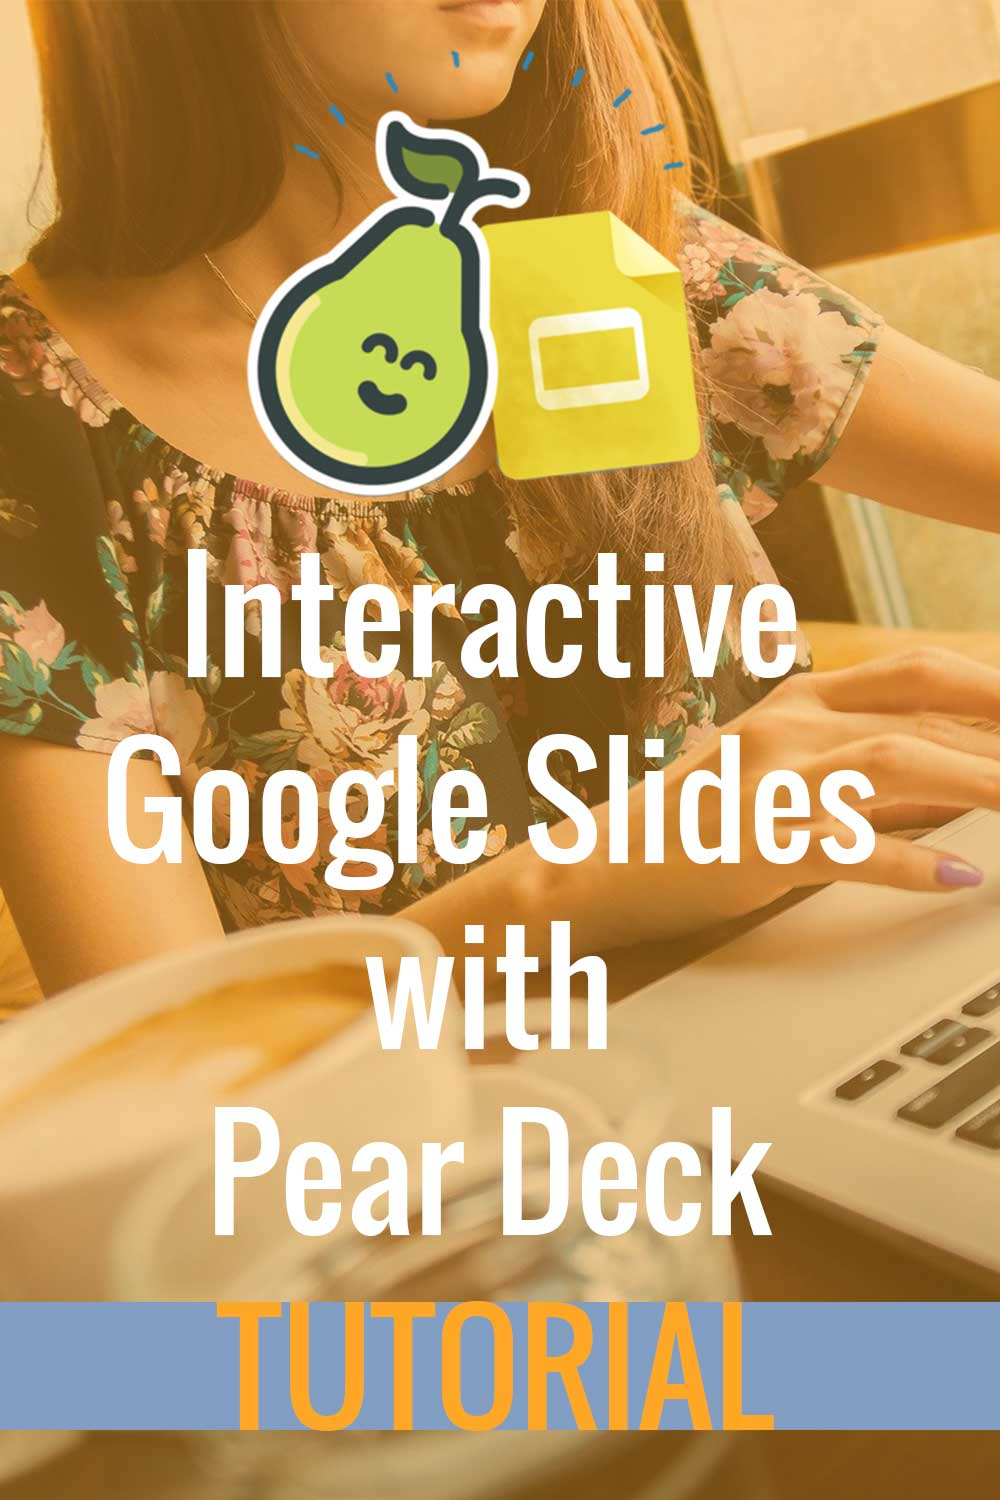 Pear Deck Tutorial